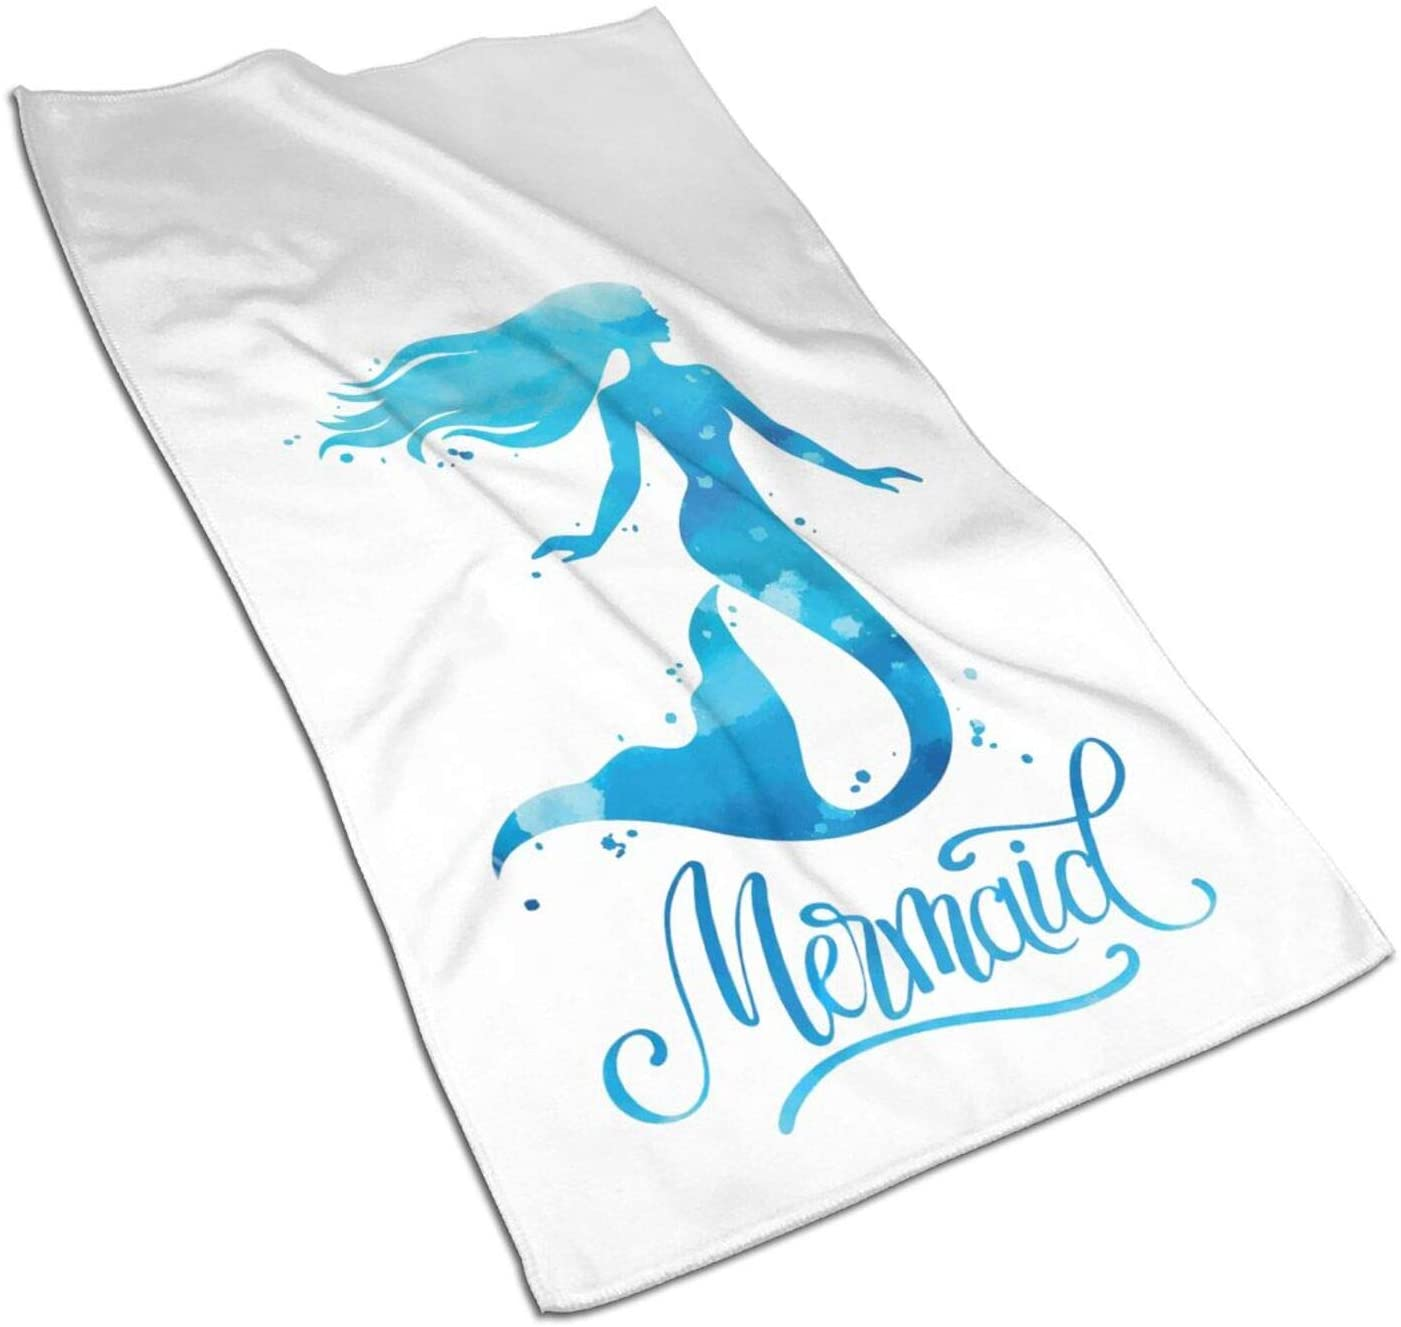 Hand Towels, Watercolor Mermaid Kitchen Towels Microfiber Terry Dish Towels for Drying Dishes and Blotting Spills,Dish Towels for Your Kitchen Decor,27.5x15.7in